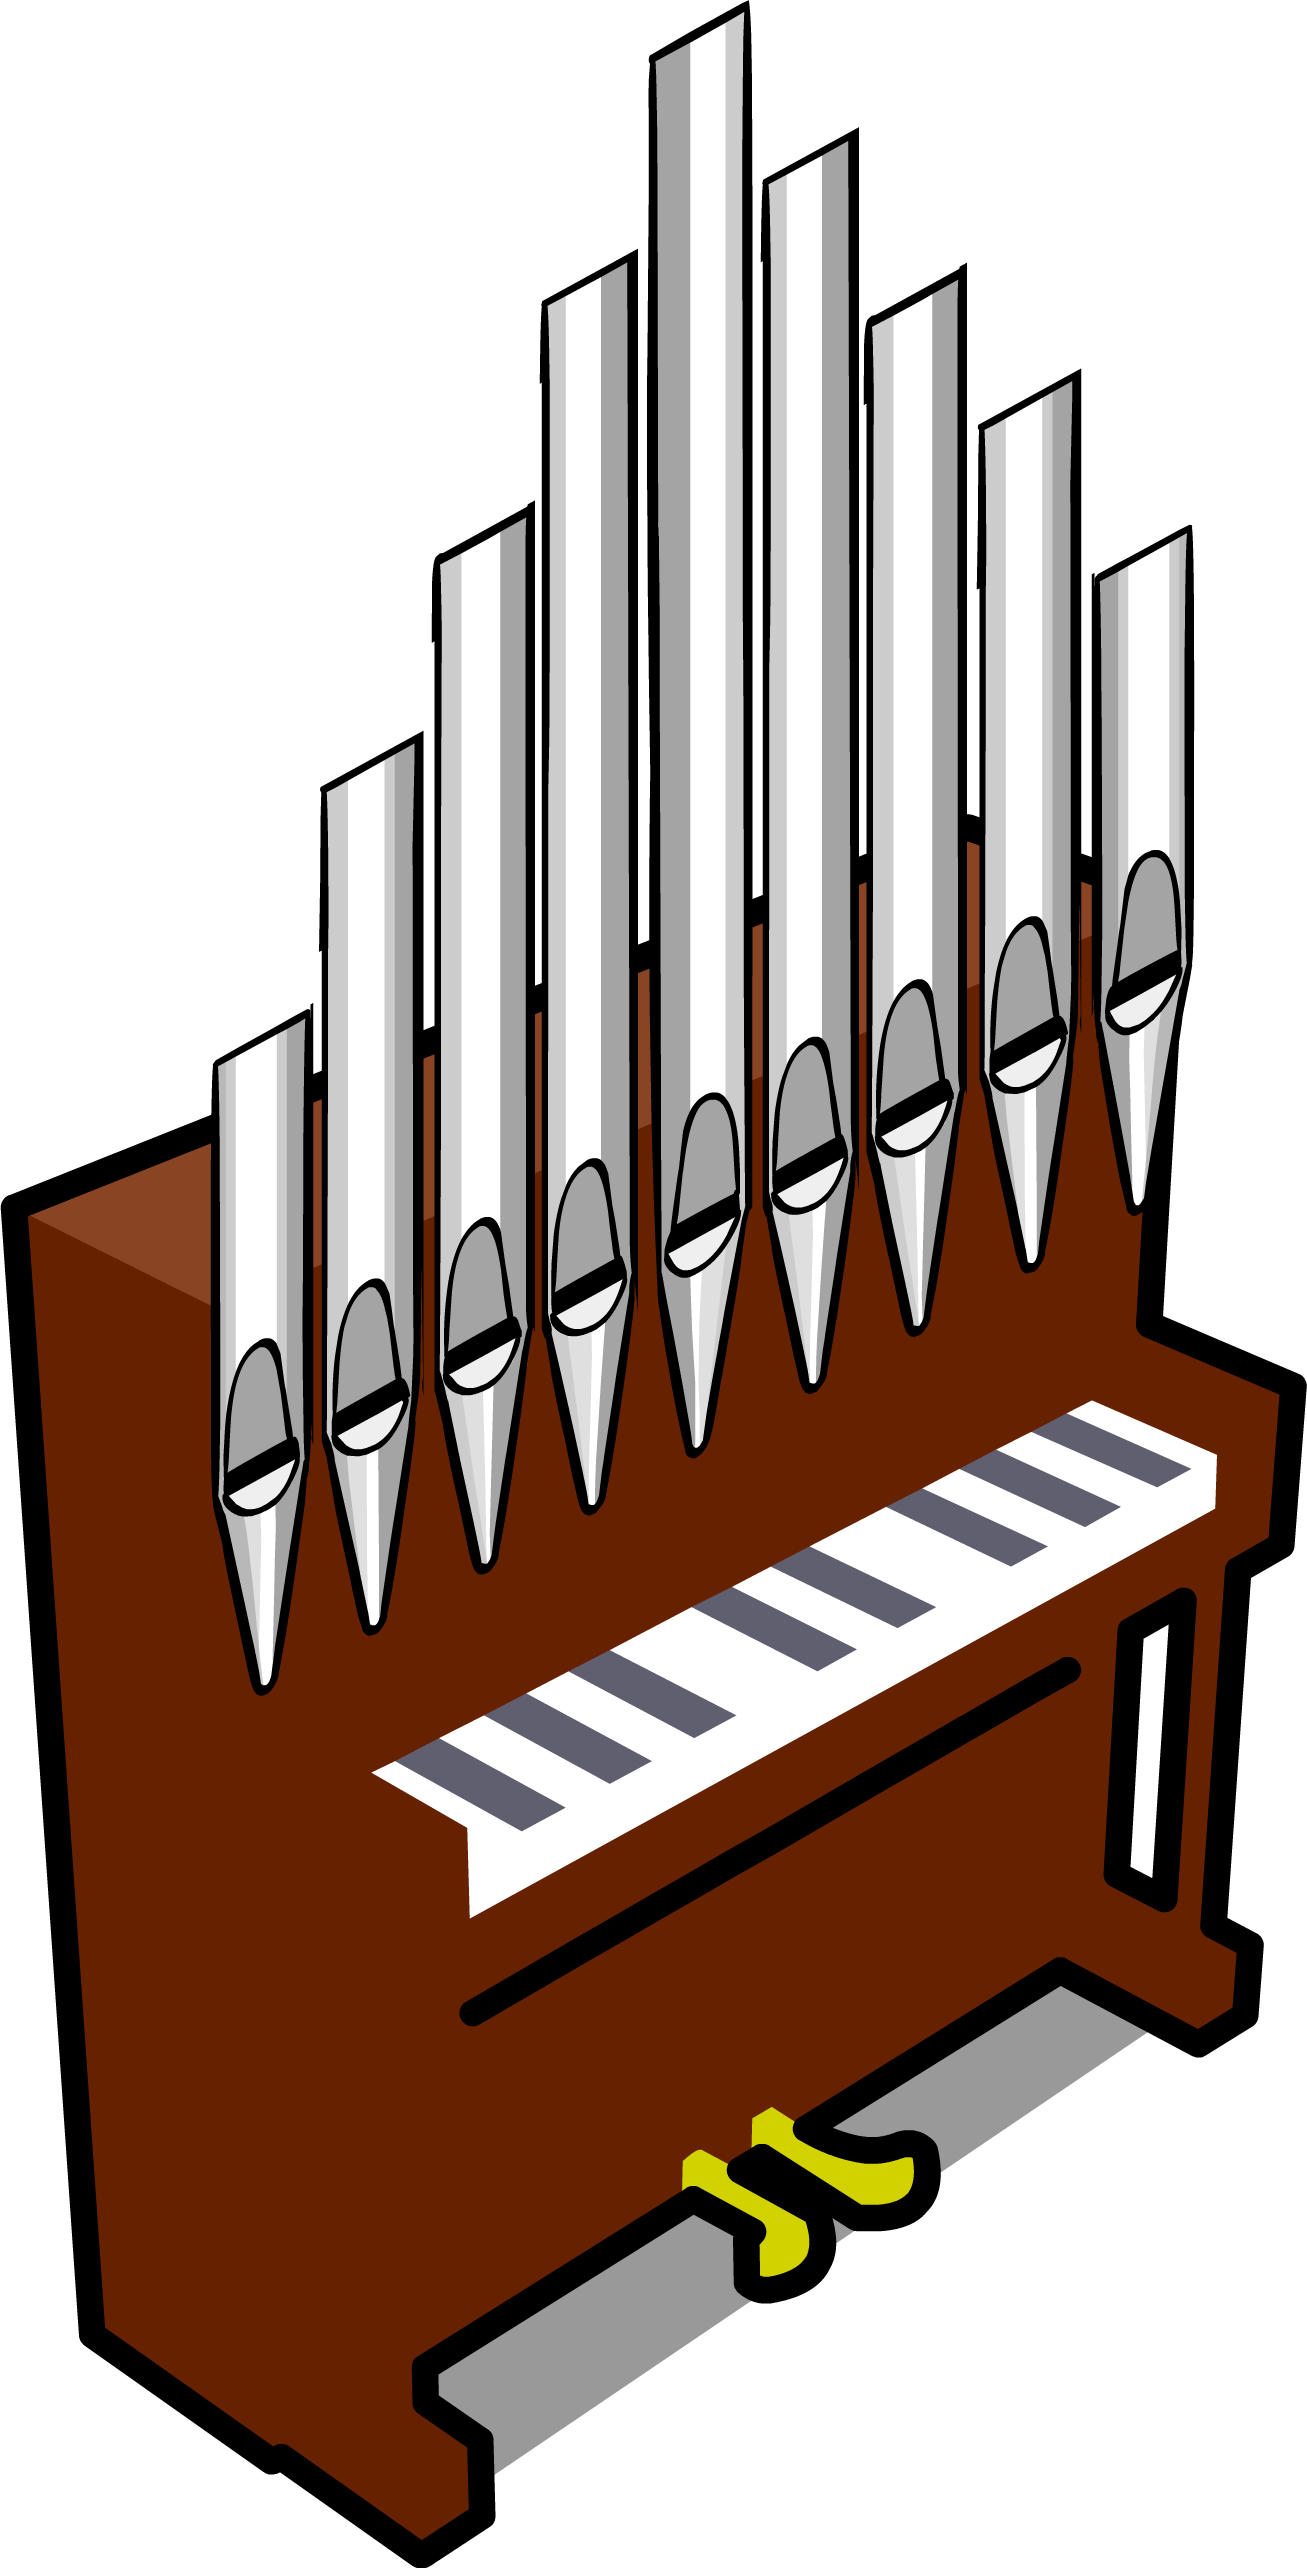 Pipe organ clipart free picture free download Pipe organ clipart clipart images gallery for free download | MyReal ... picture free download